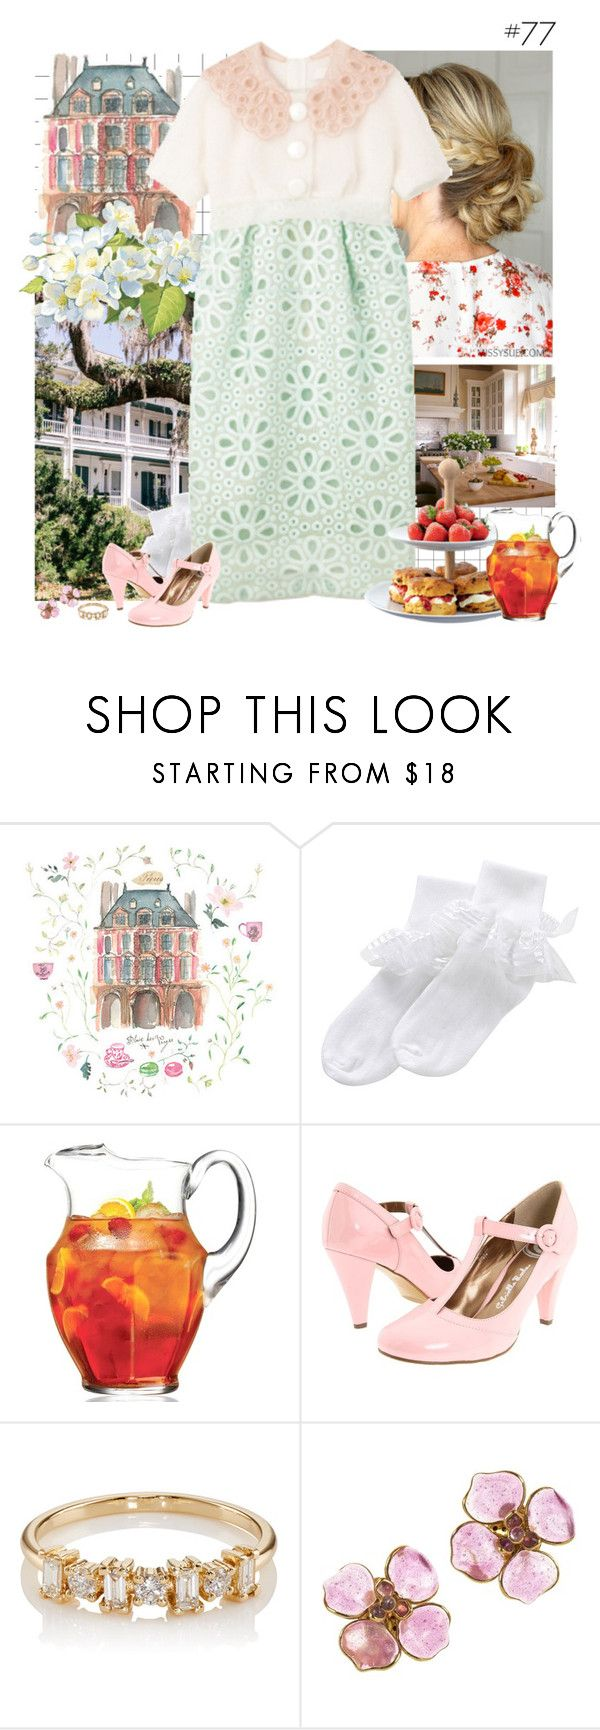 """""""#77"""" by lessalice ❤ liked on Polyvore featuring Copper Key, Louis Vuitton, The Cellar, Gabriella Rocha, Ileana Makri and Chanel"""